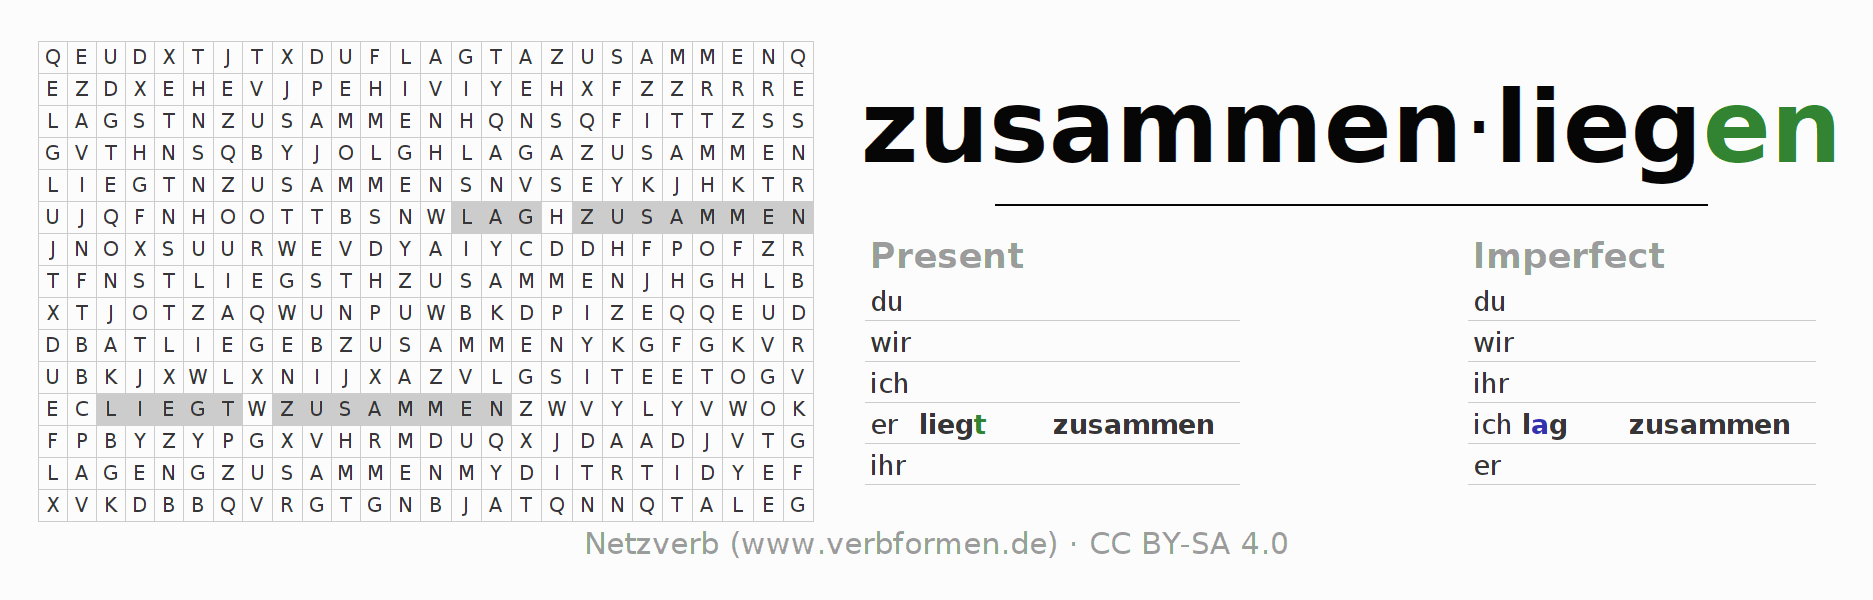 Word search puzzle for the conjugation of the verb zusammenliegen (ist)